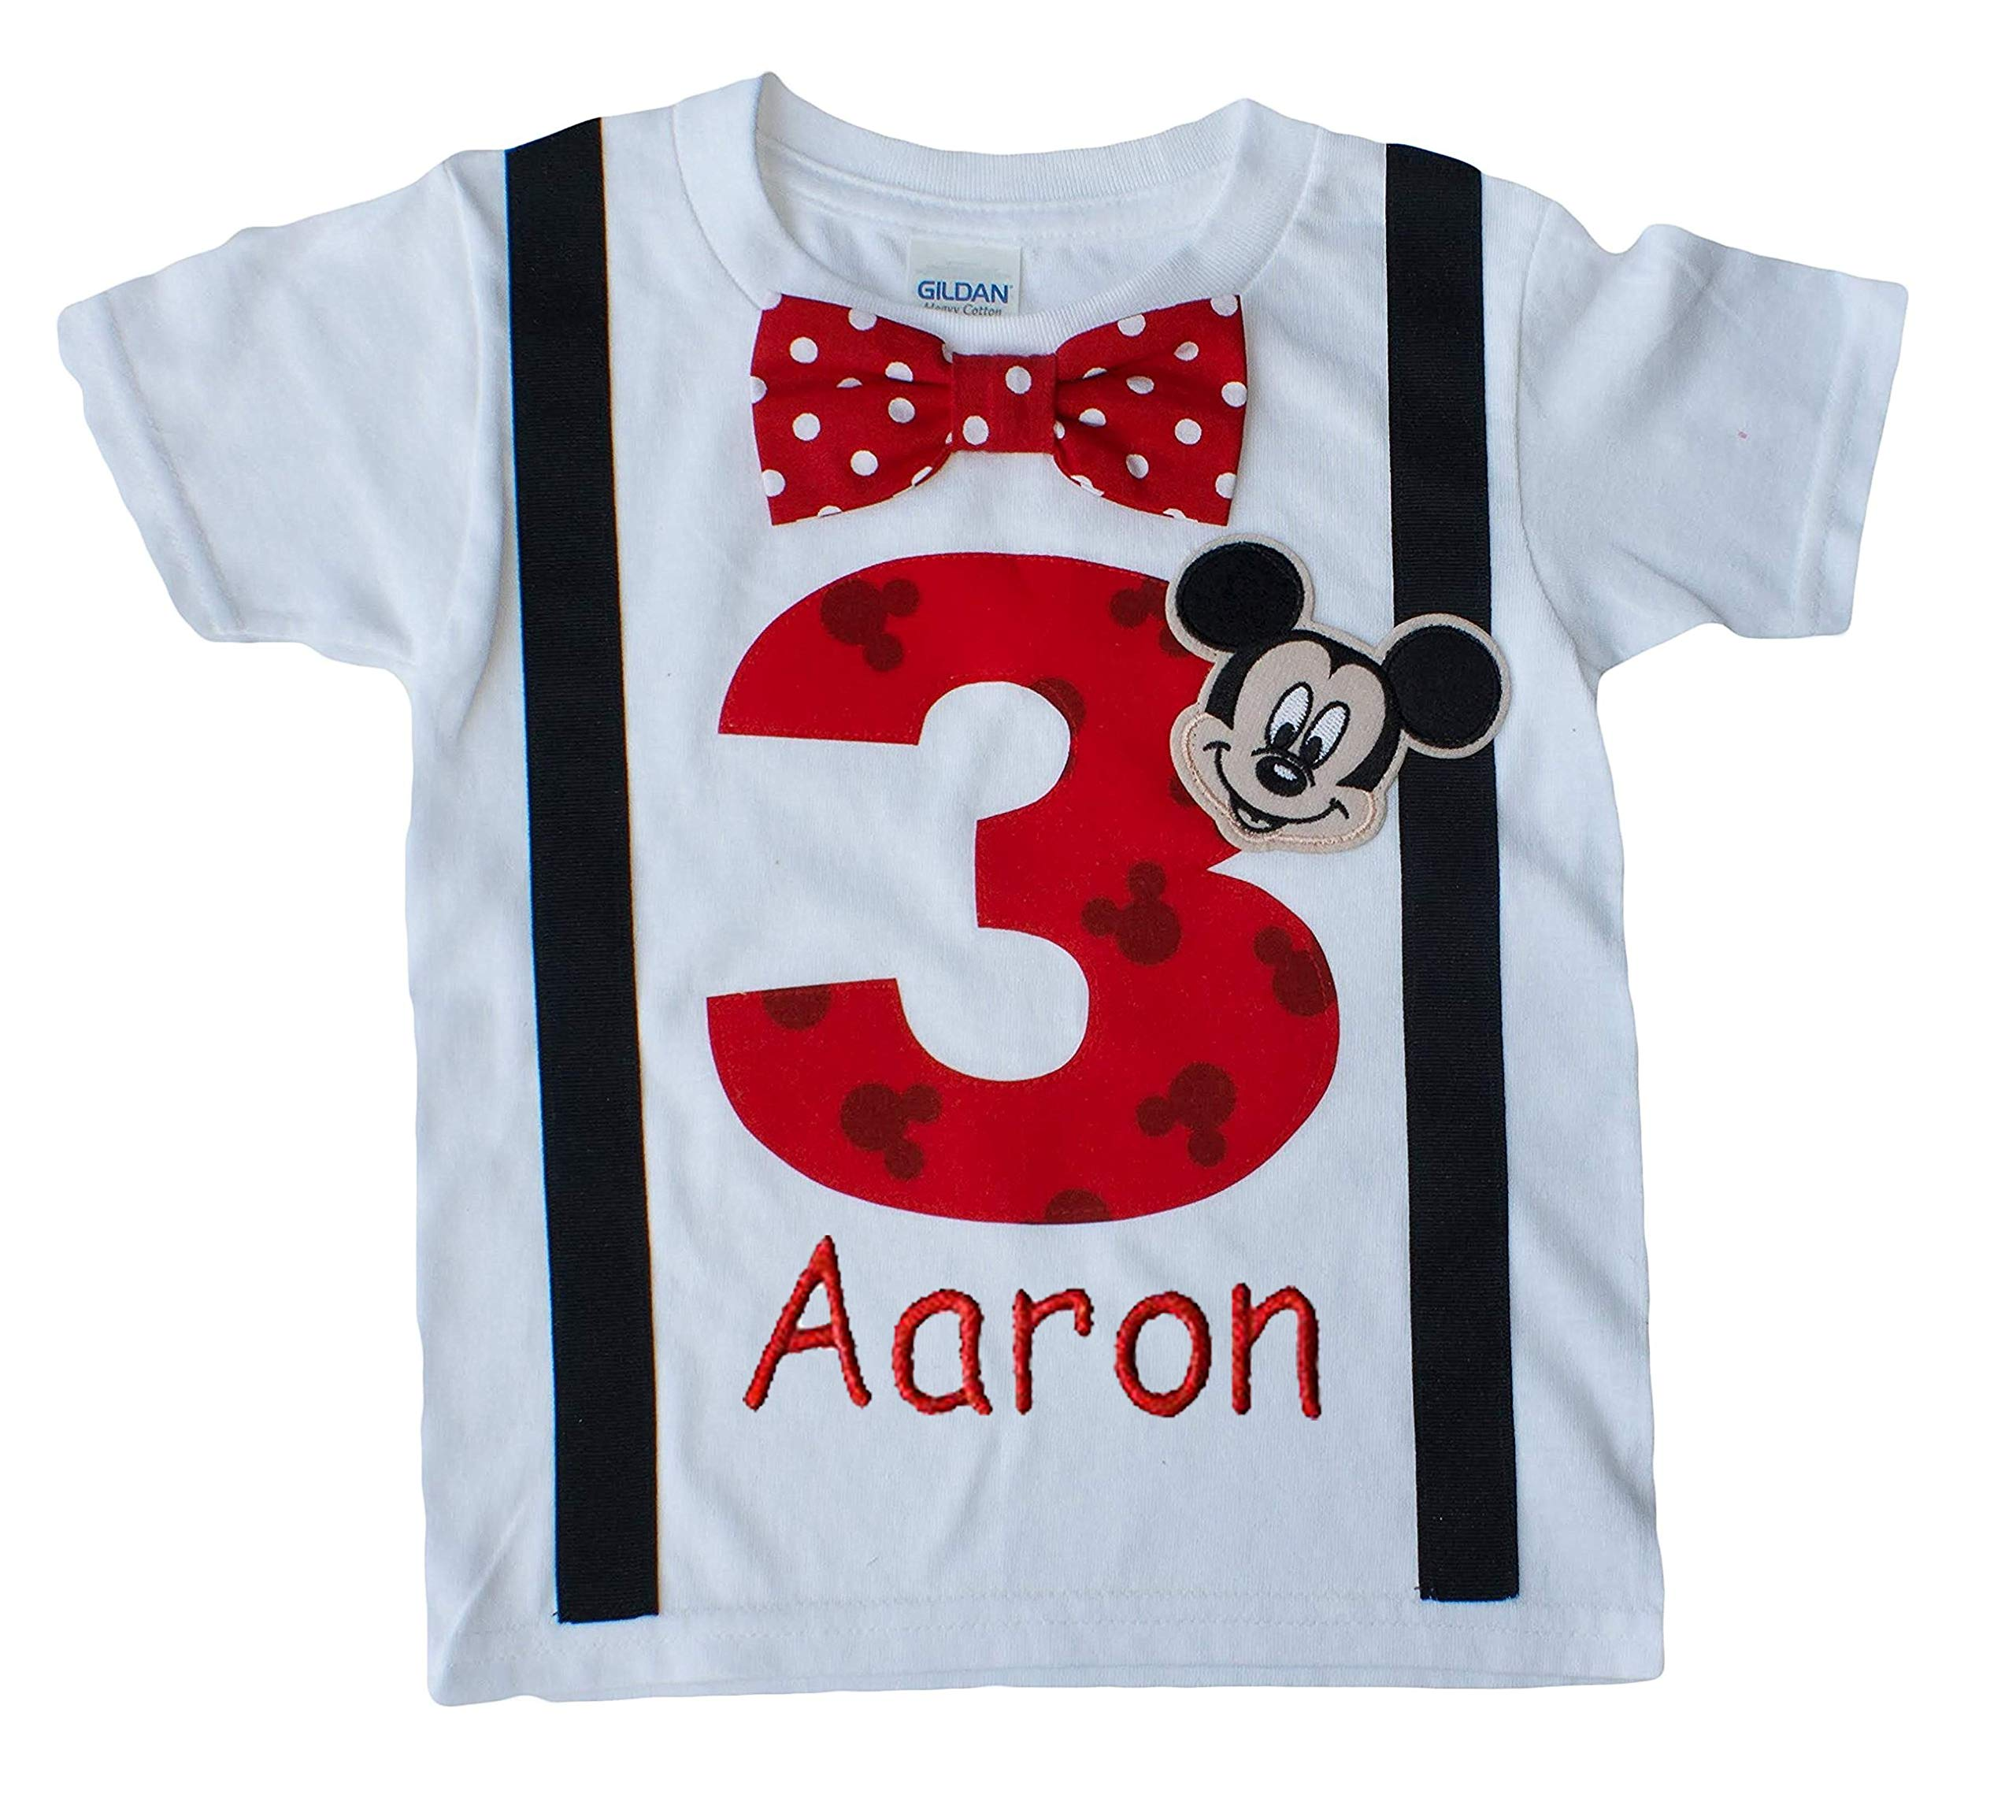 3rd Birthday Shirt Boys Mouse Tee Personalized (3T Short Sleeve, White-Black-red Dot) by Perfect Pairz